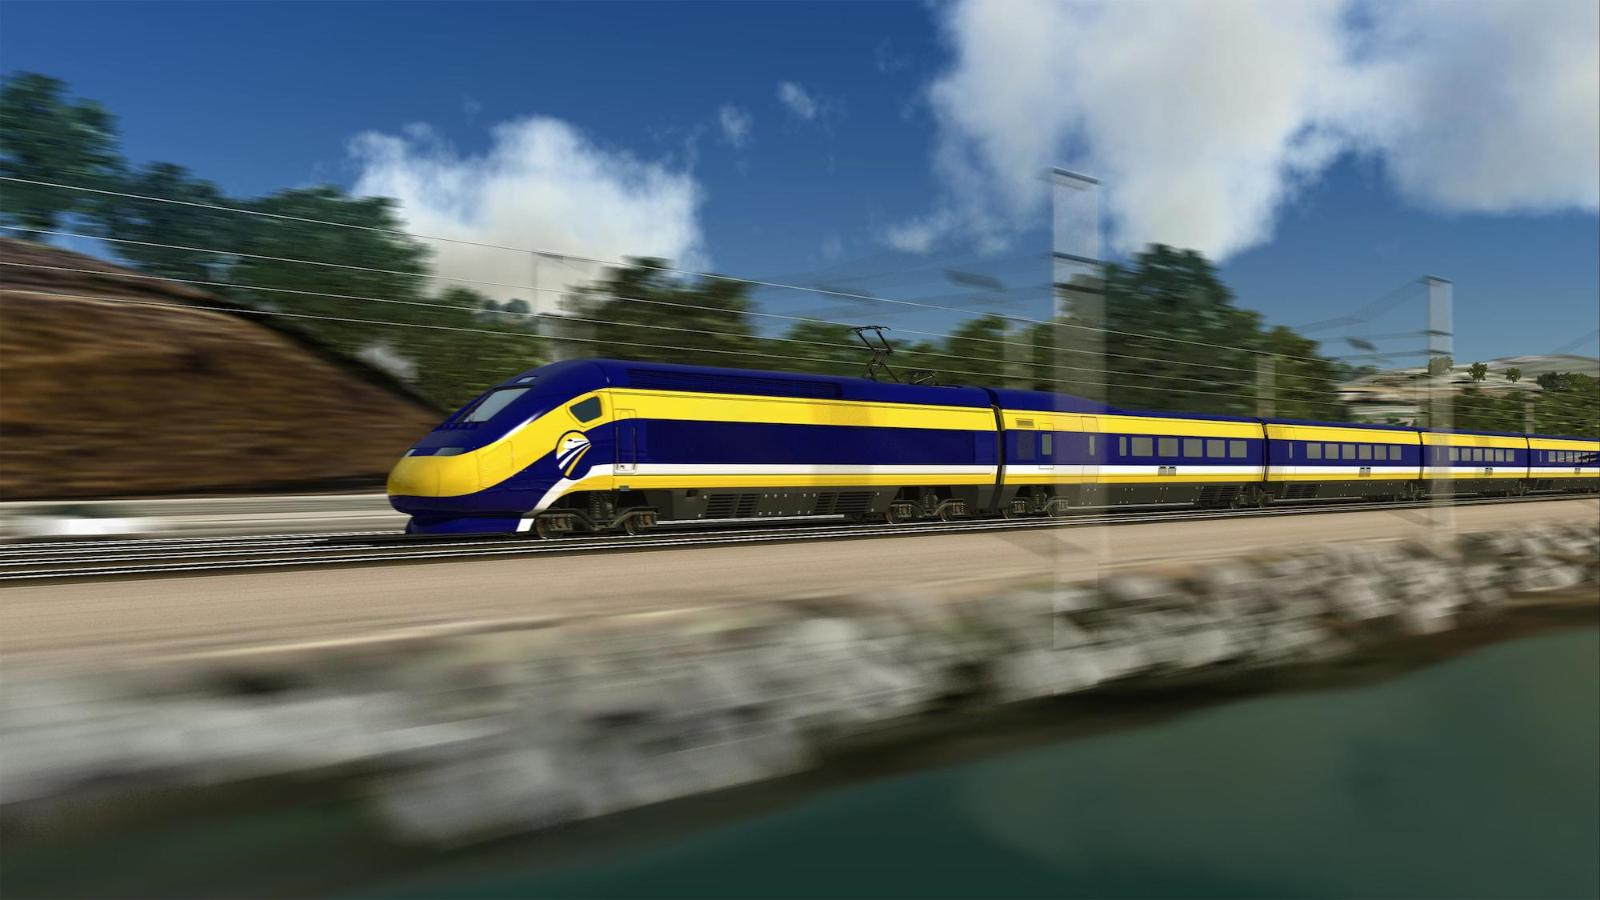 California's high-speed rail: LA to SF in 3 hours